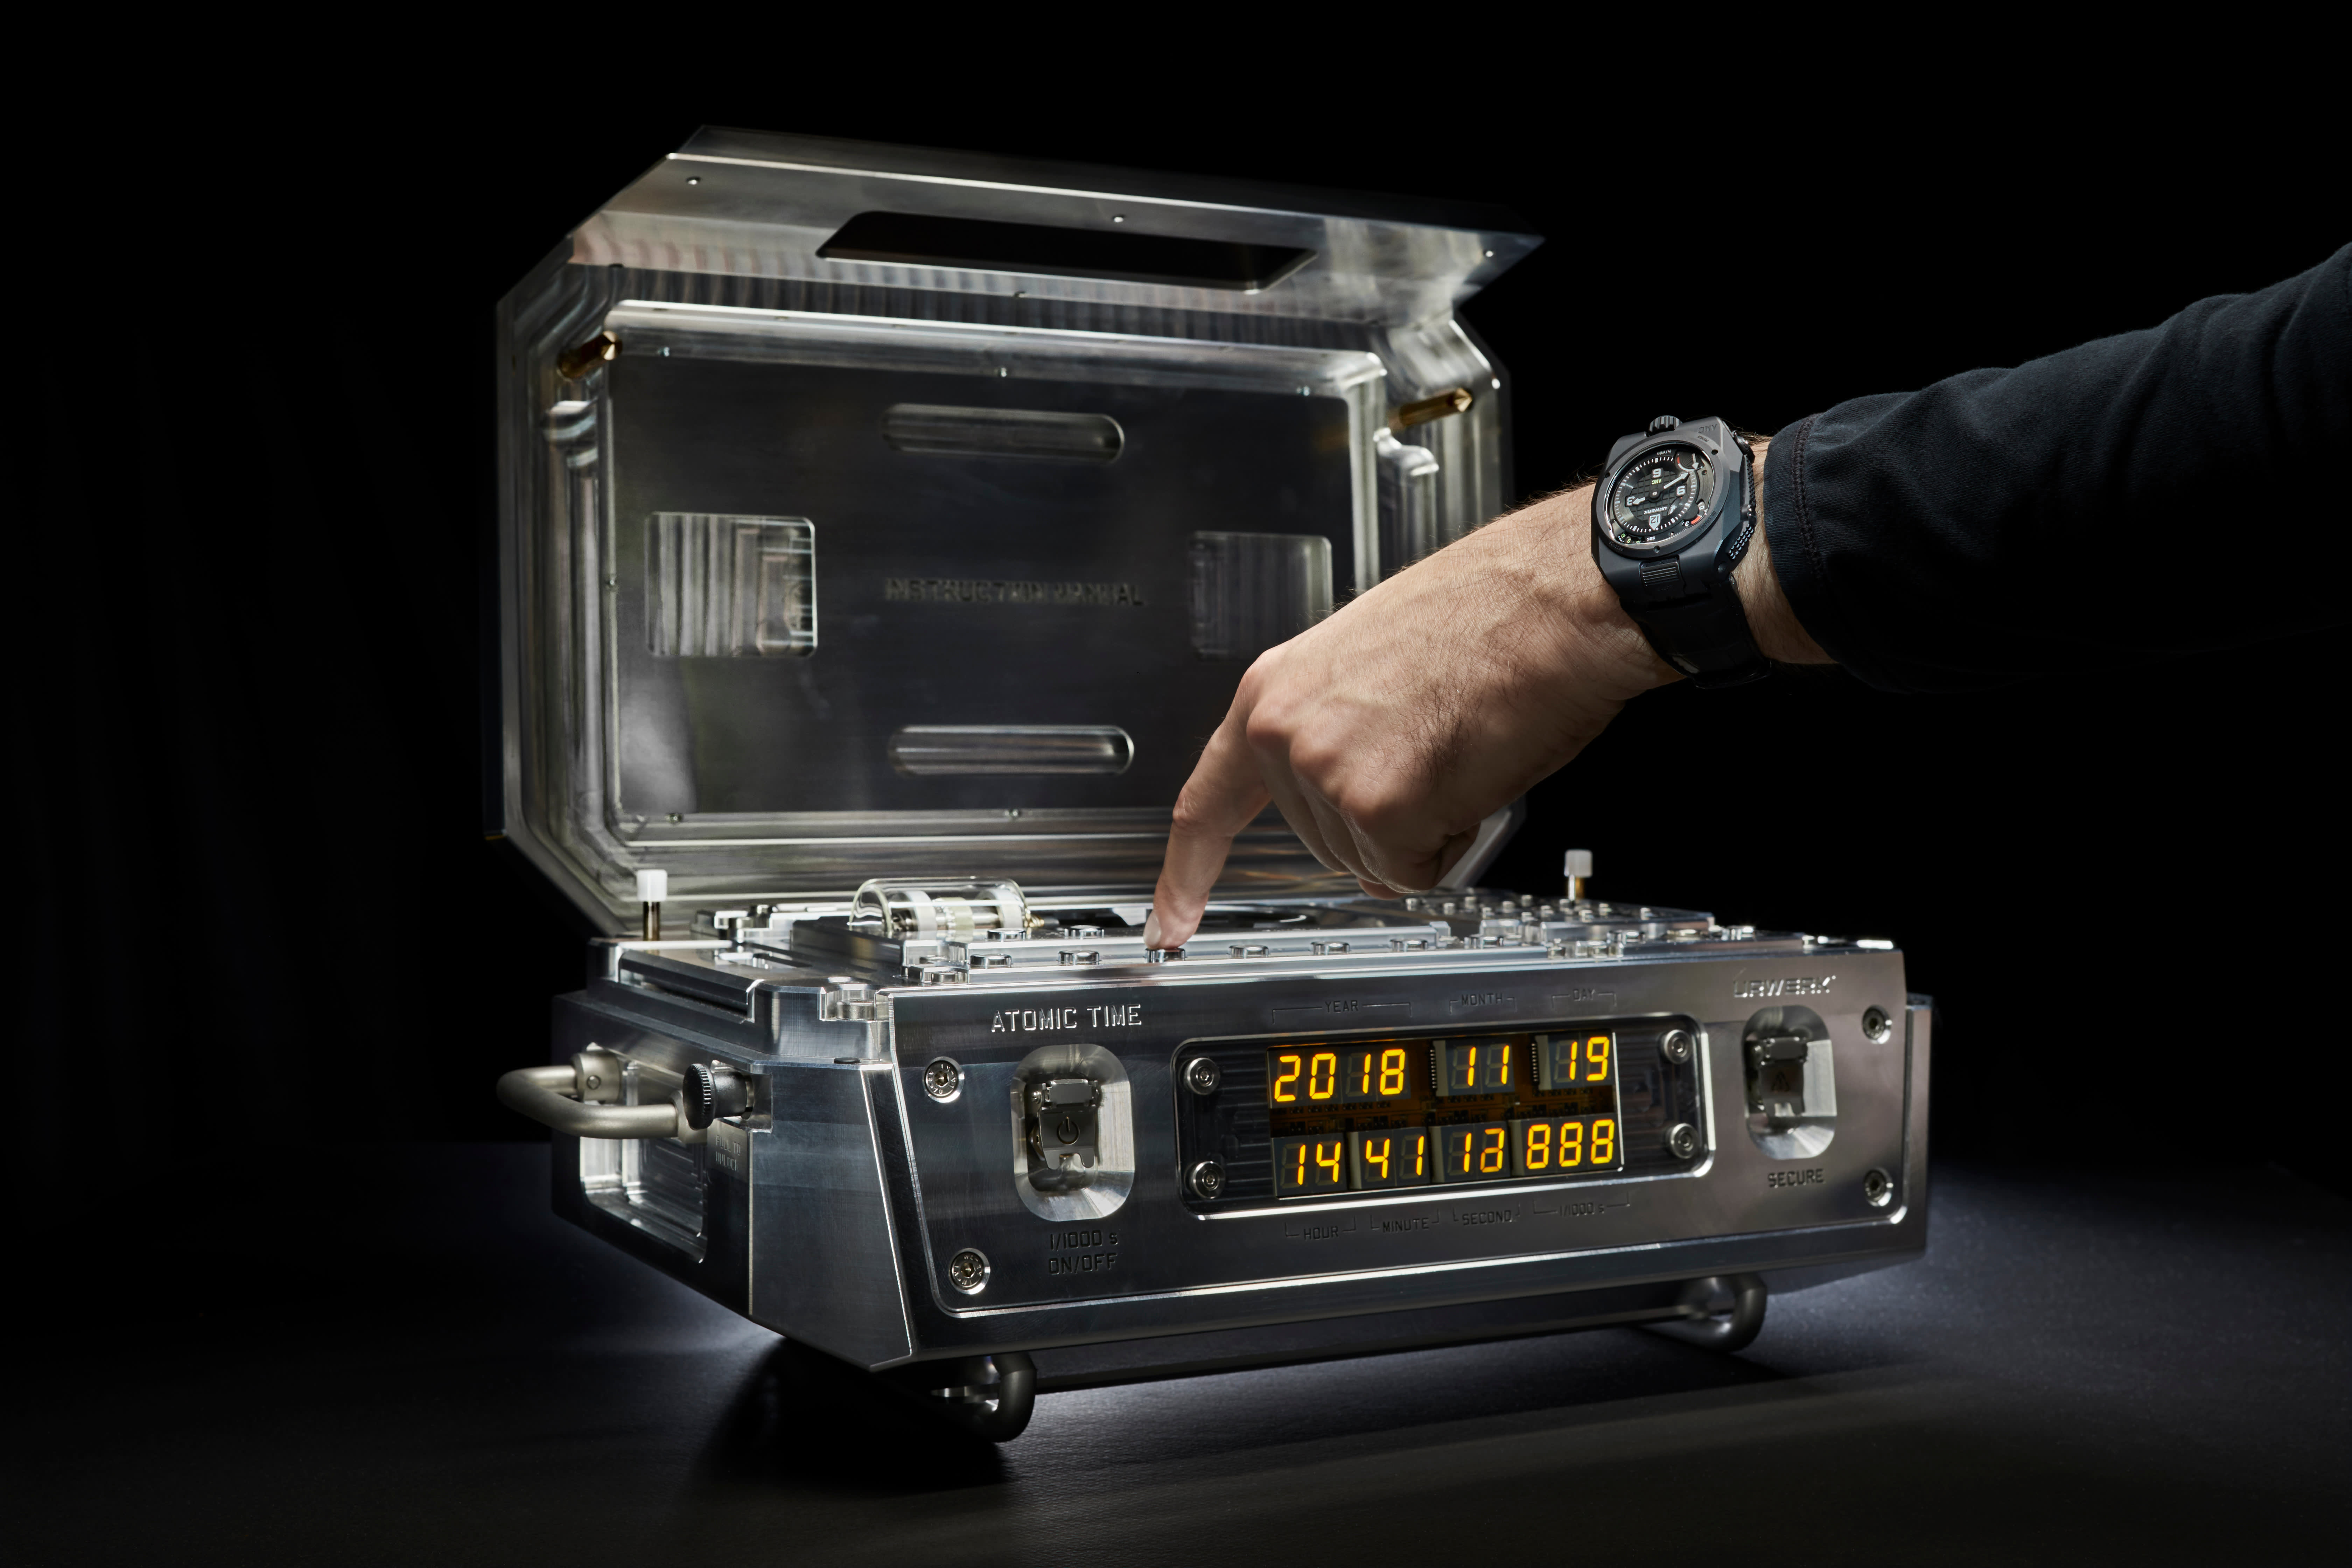 This $2.7 million watch looks straight out of a James Bond movie and keeps the world's most accurate time